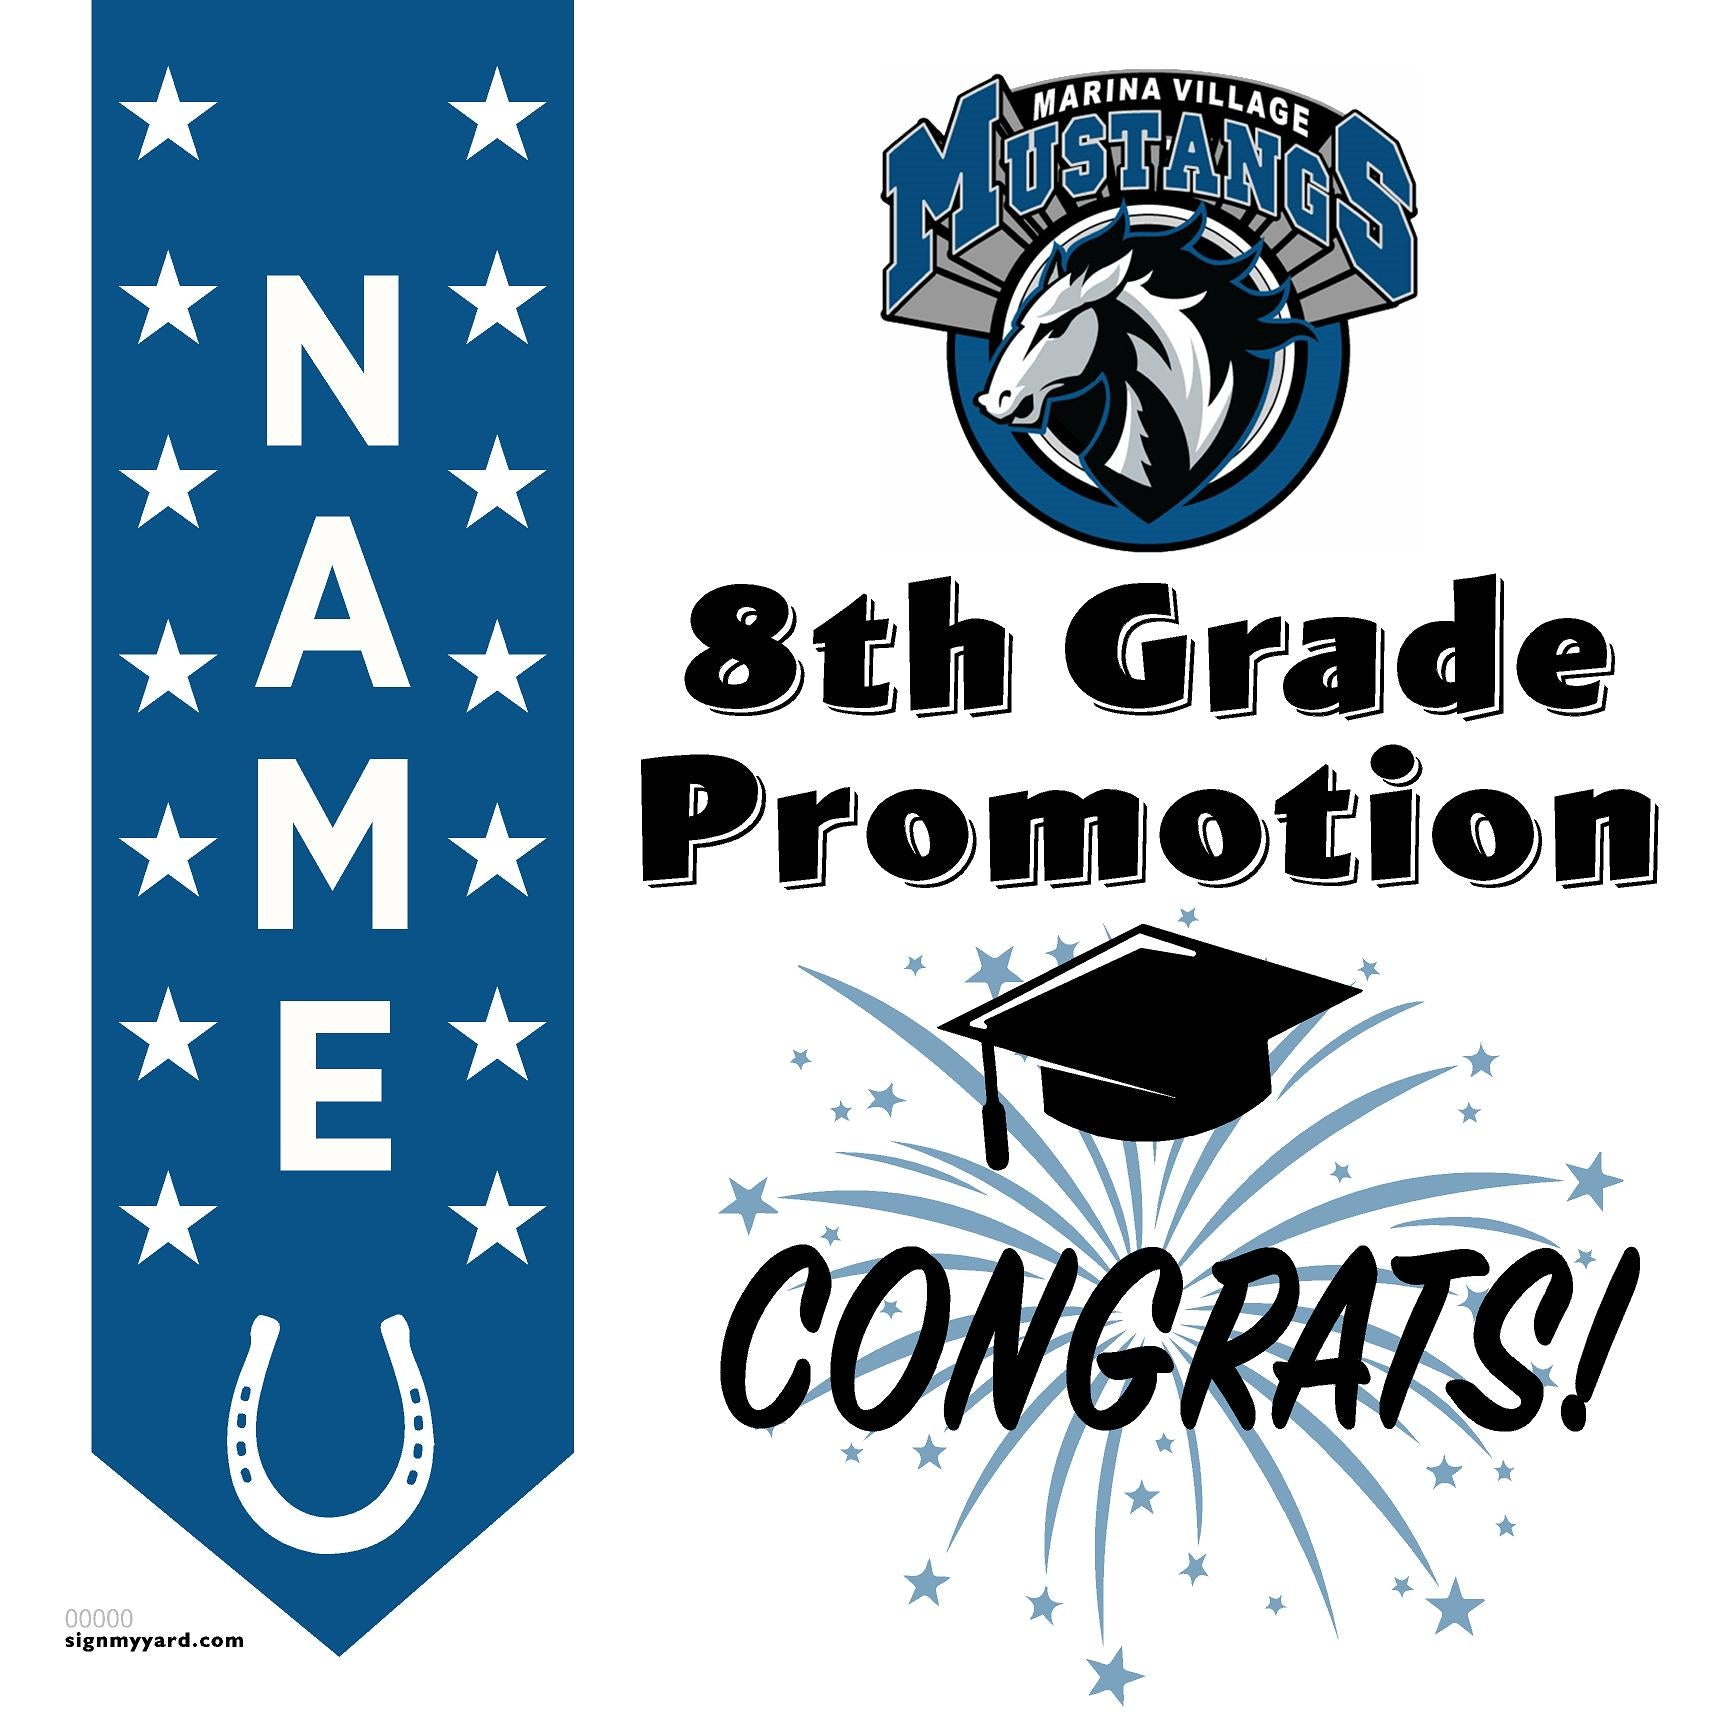 Marina Village Middle School 8th Grade Promotion 24x24 #shineon2024 Yard Sign (Option B)